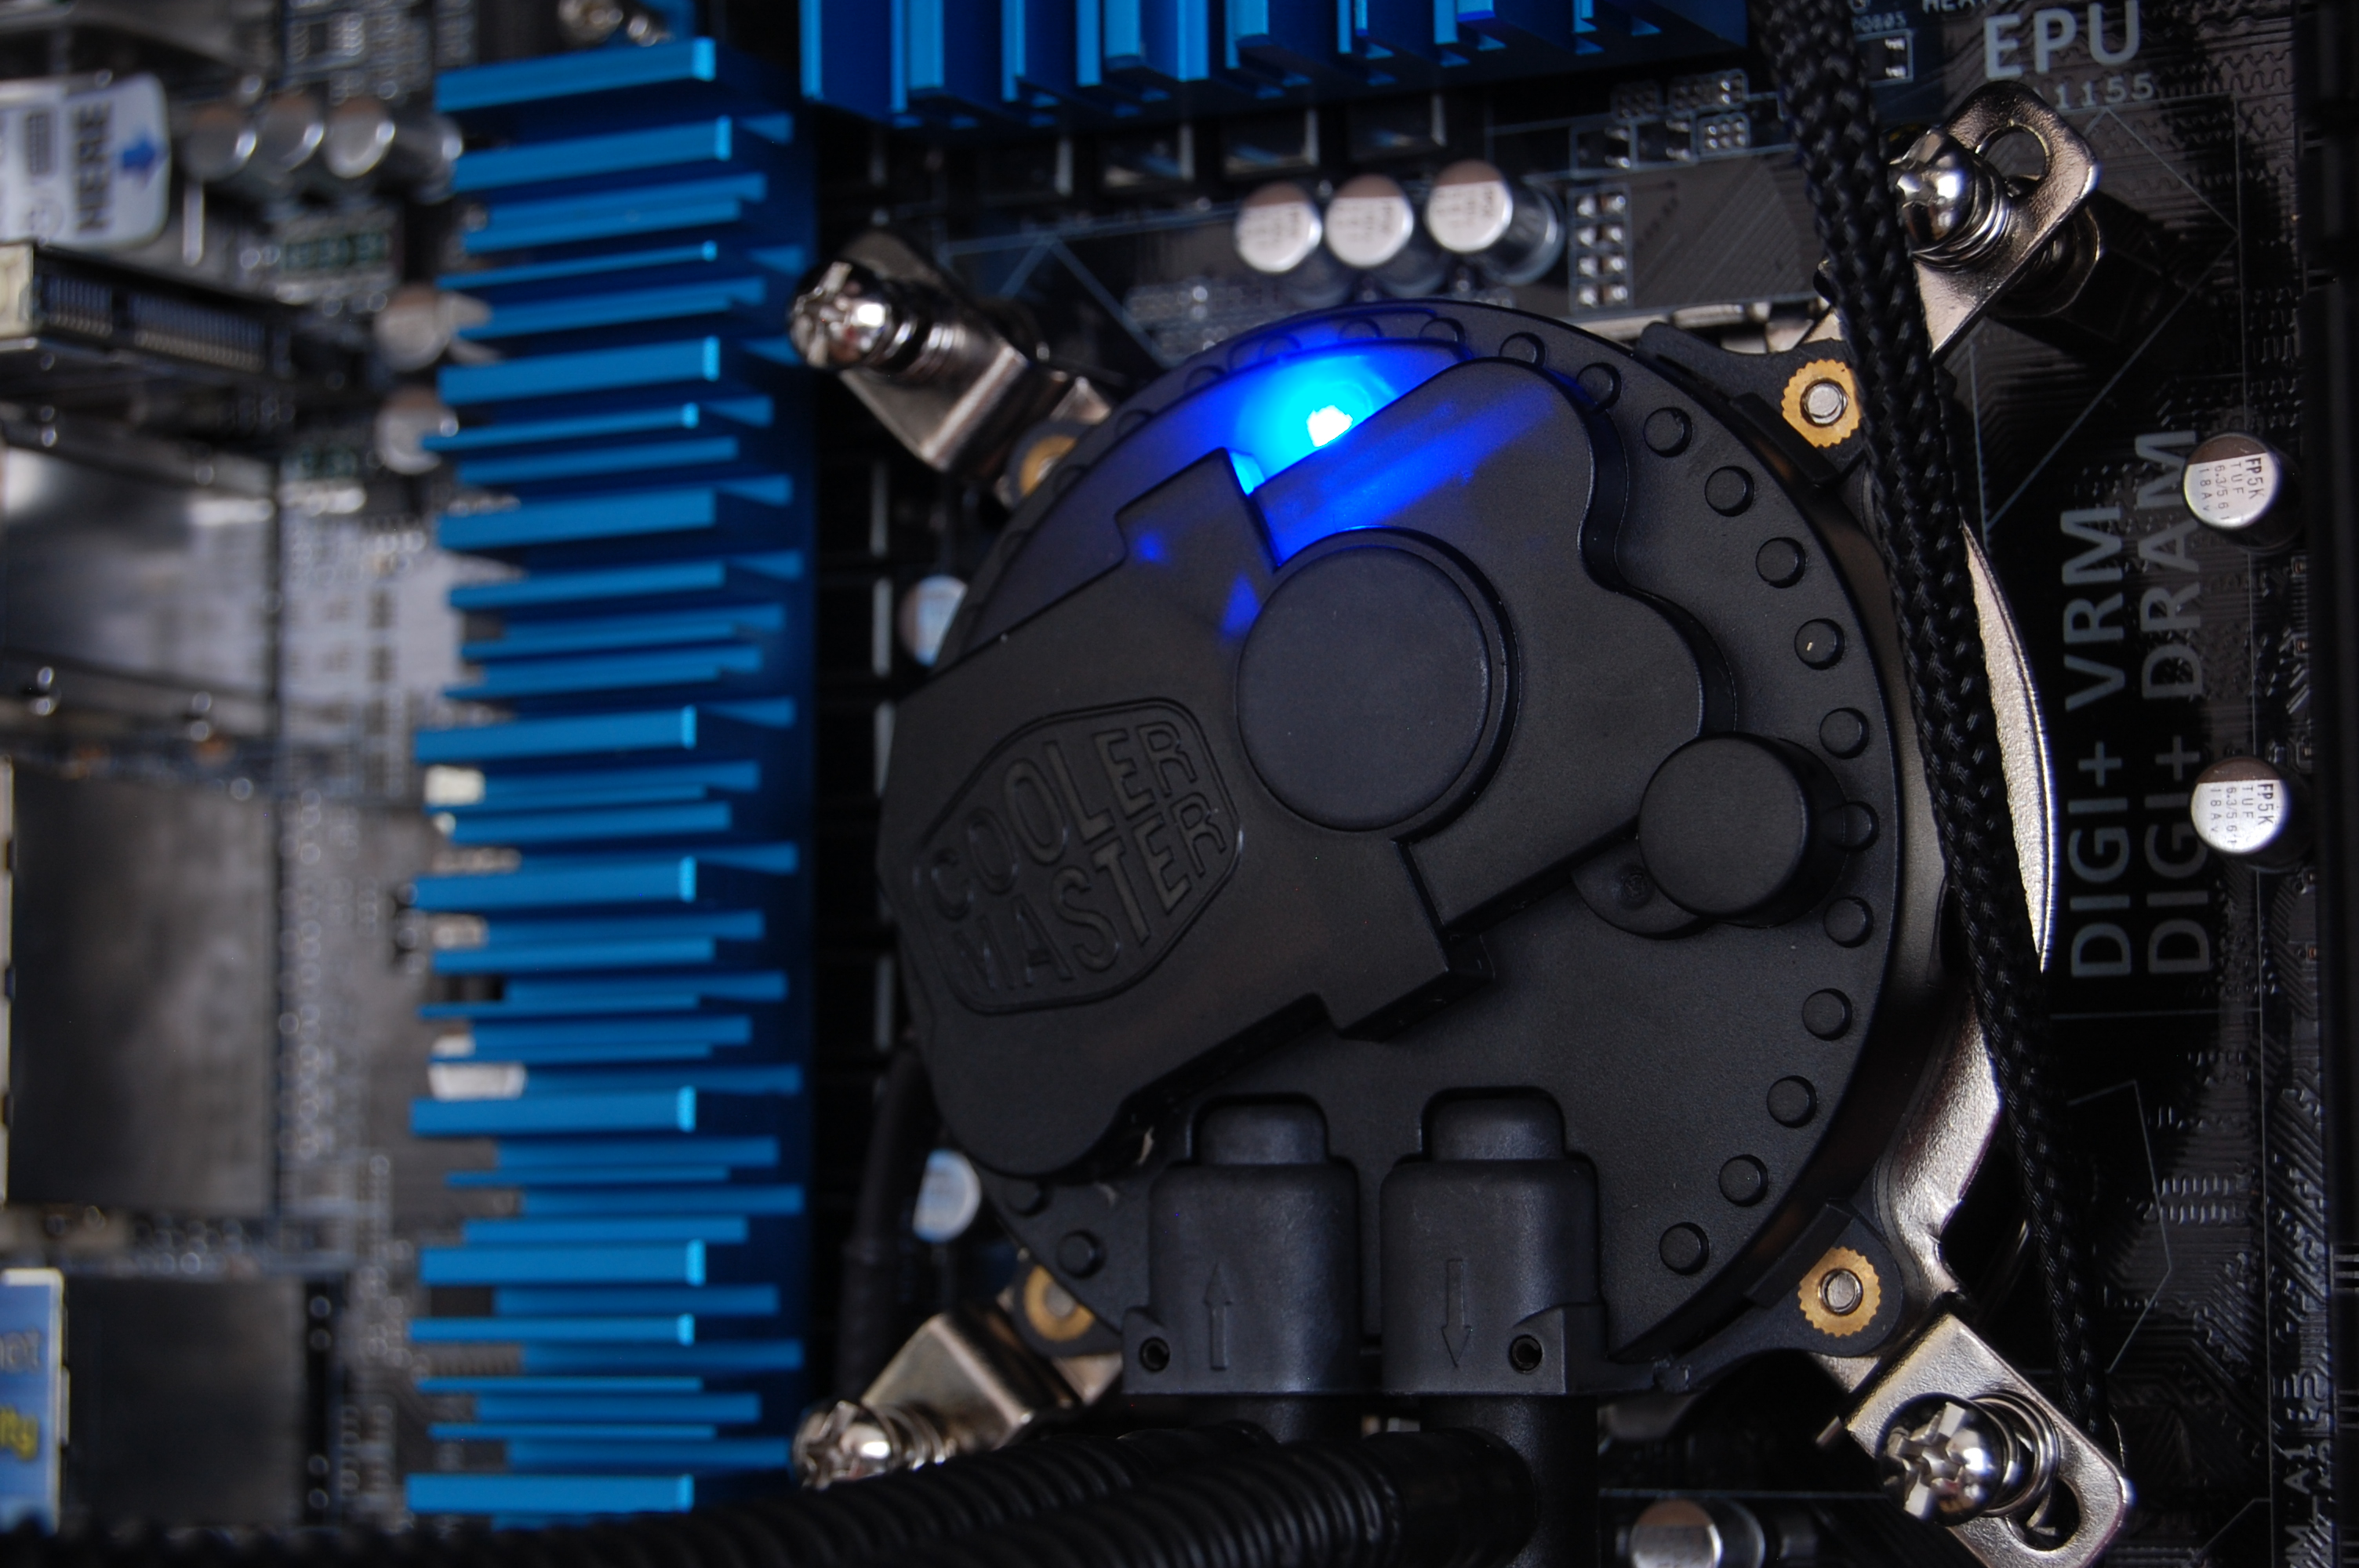 CoolerMaster Seidon 240M All-in-One Liquid CPU Cooler Review - Intro